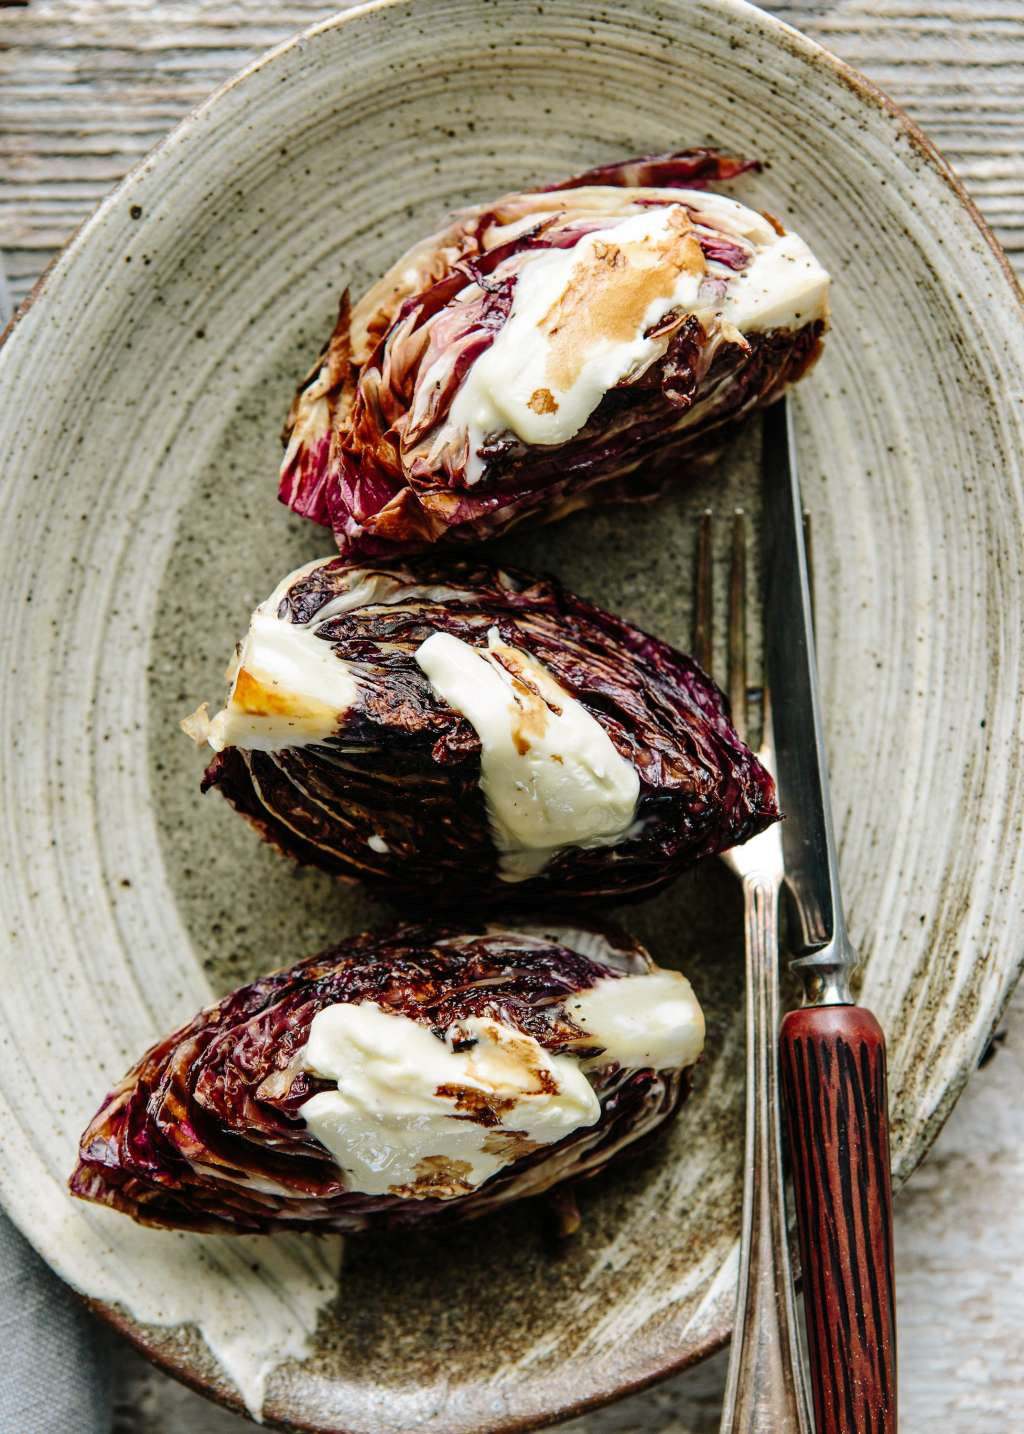 Recipe: Grilled Radicchio with Creamy Cheese